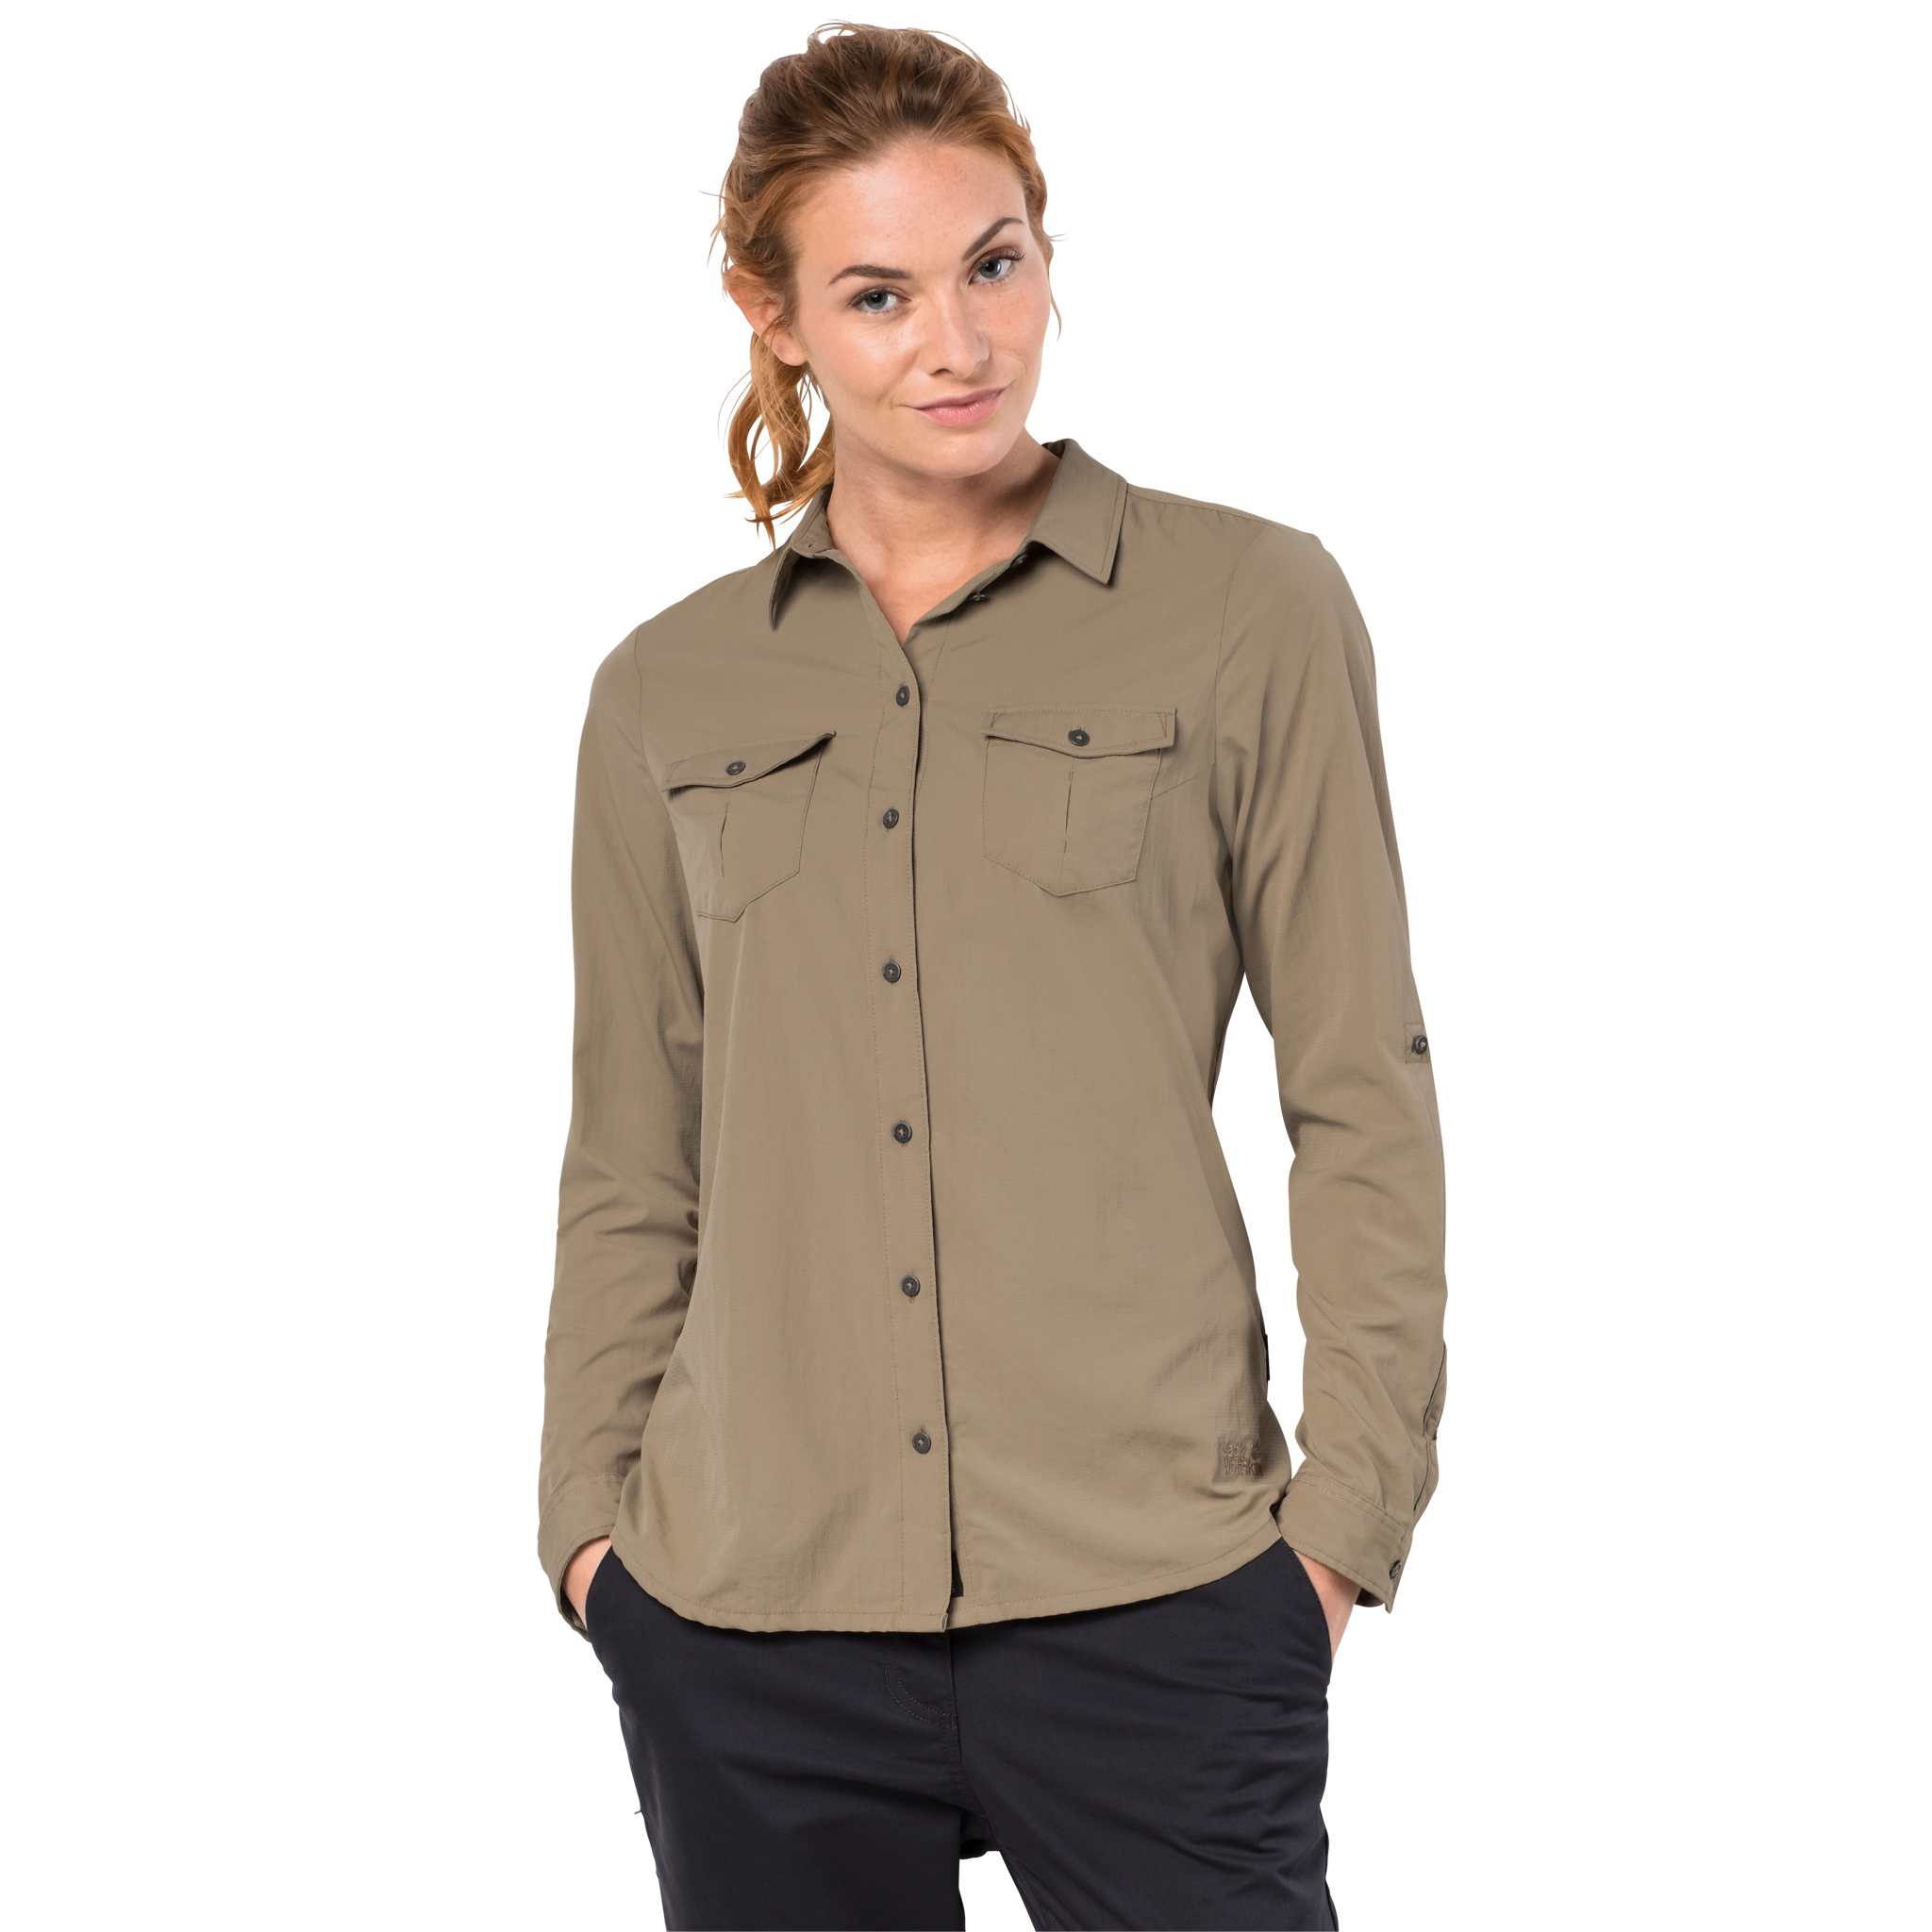 Koszula ATACAMA ROLL UP SHIRT WOMEN sand dune Jack Wolfskin